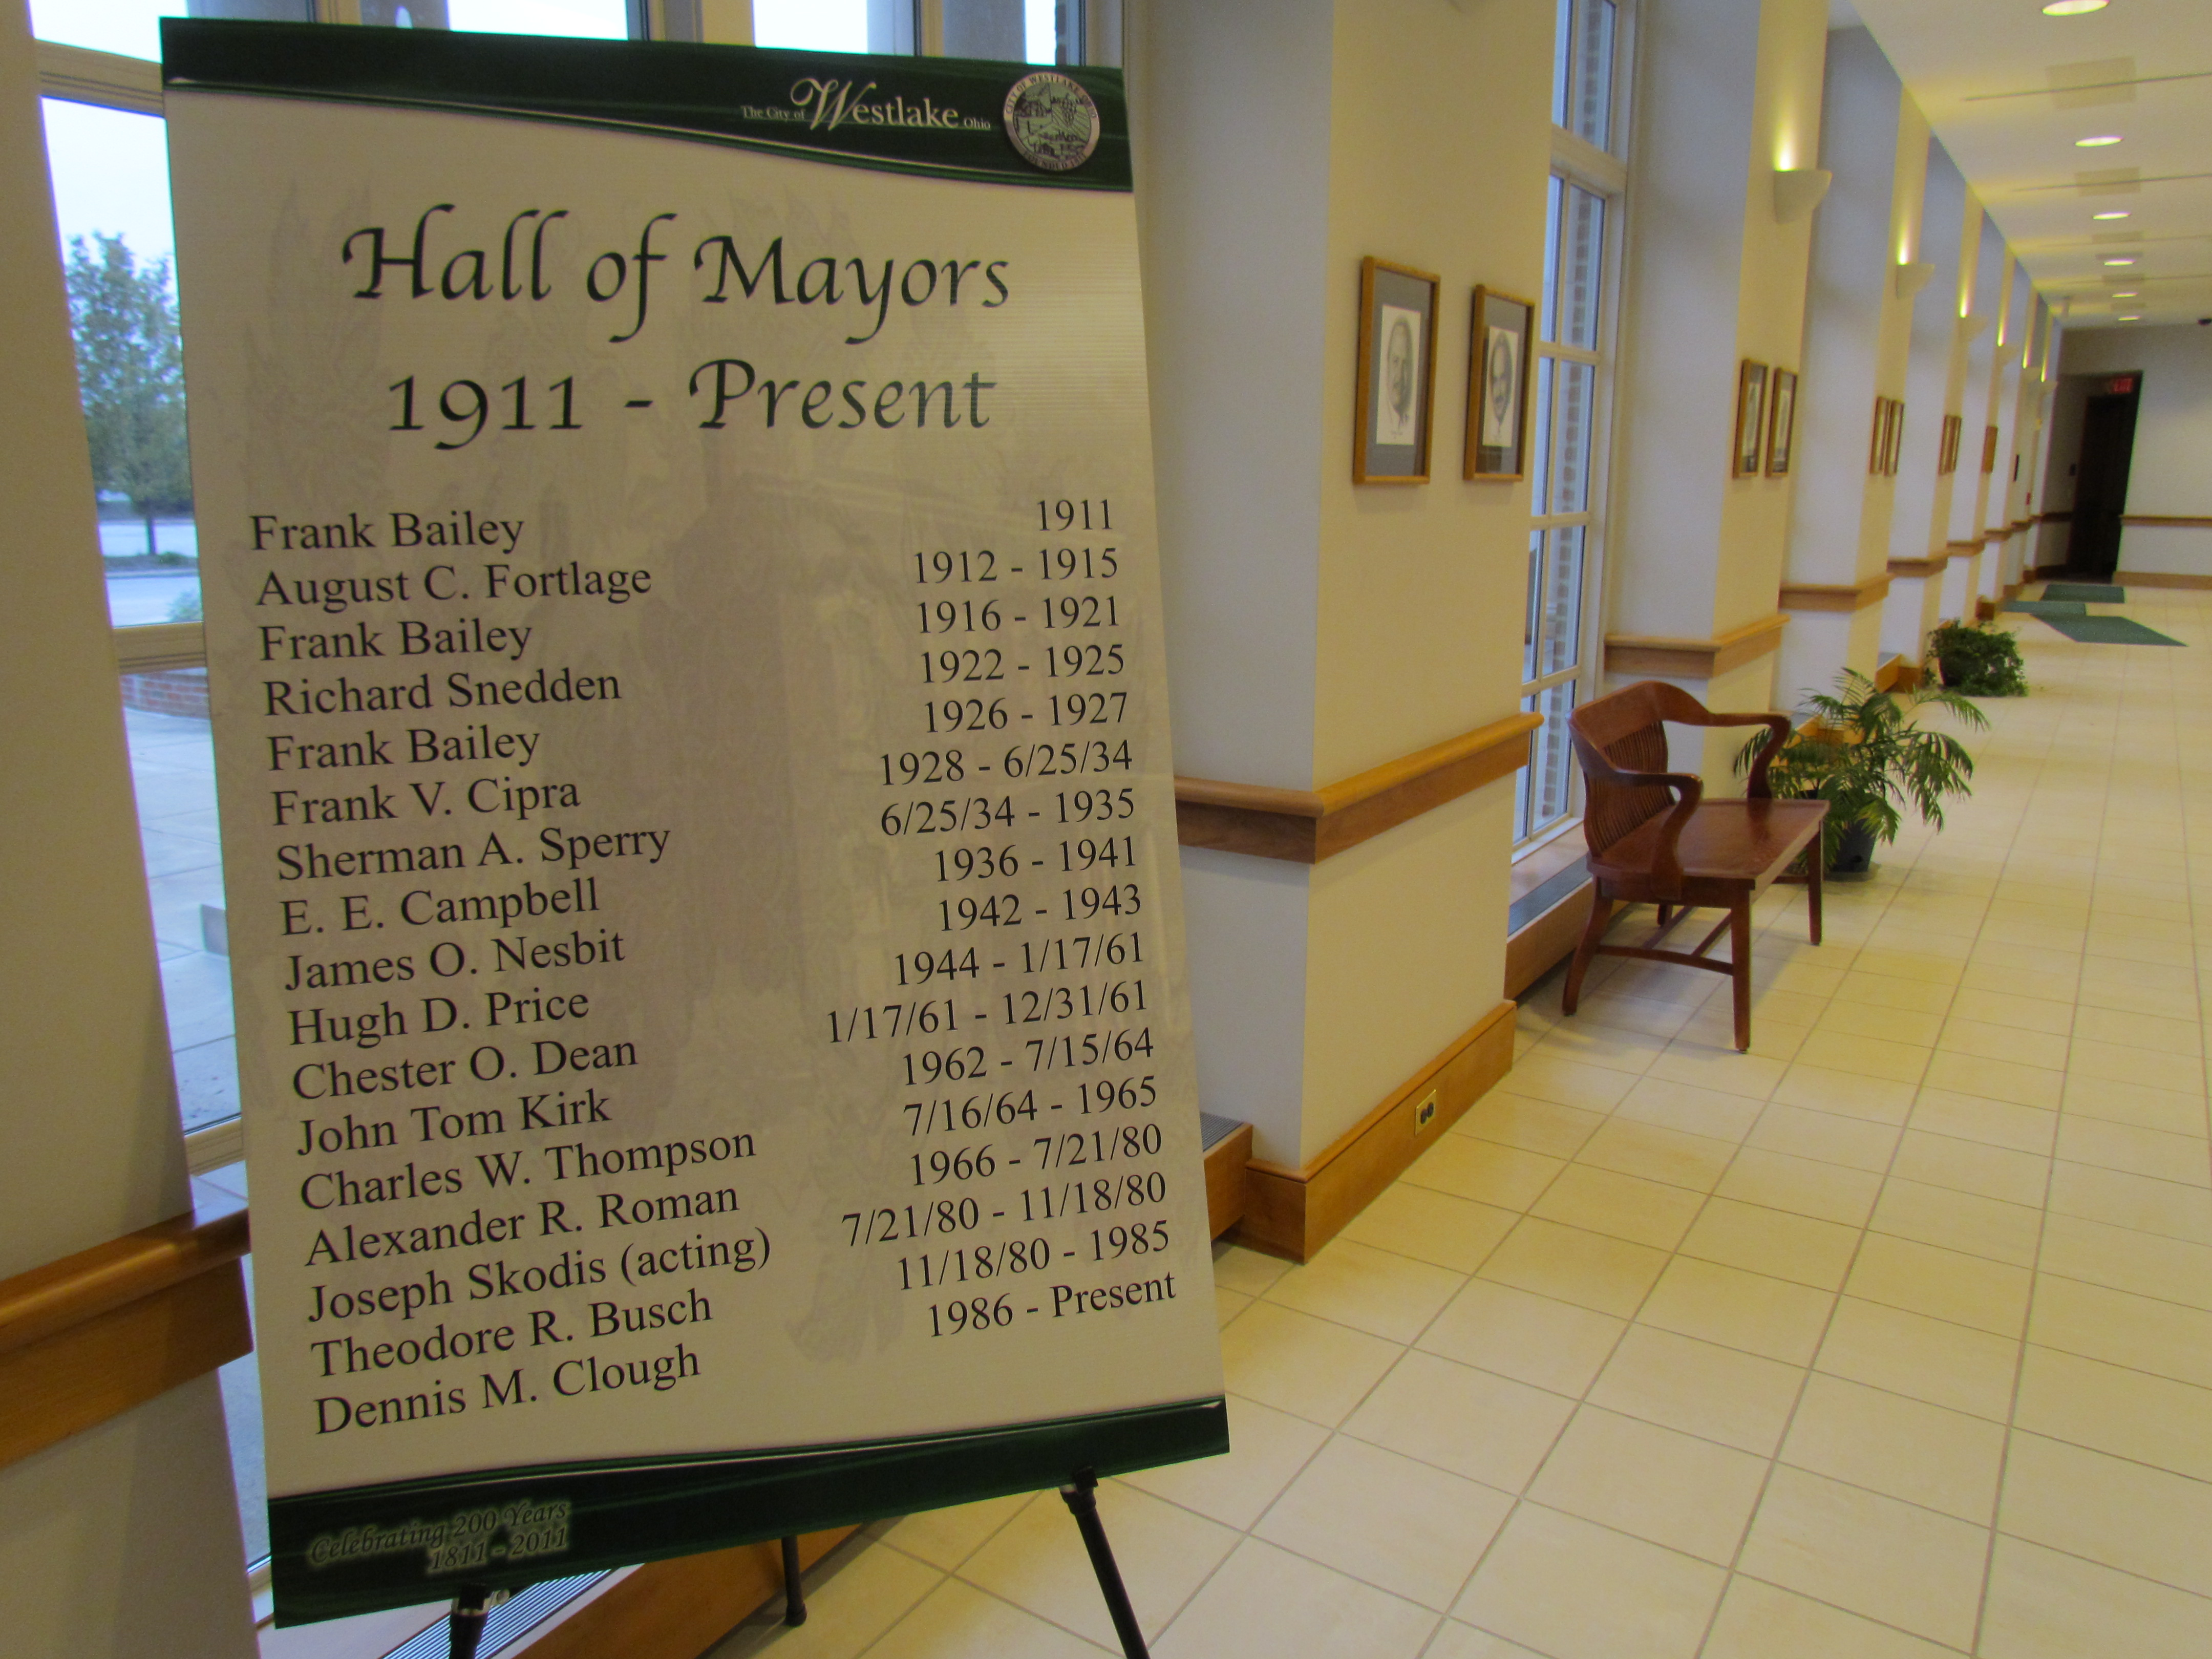 Hall of Mayors